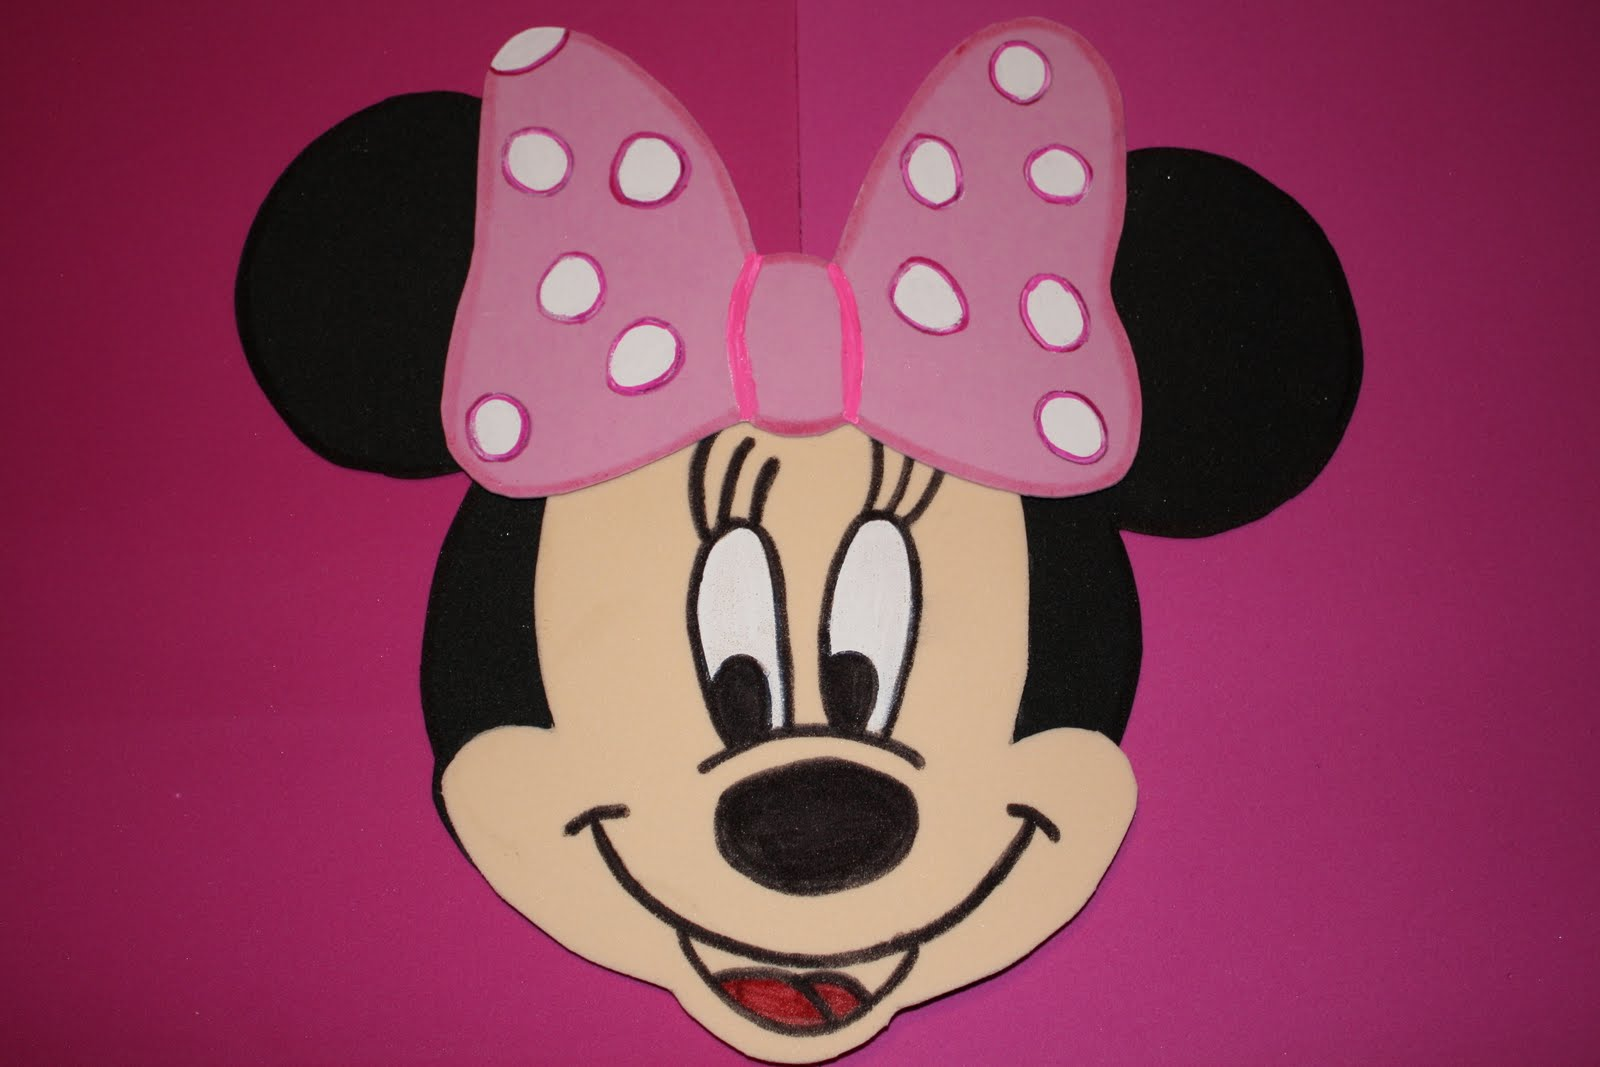 minnie mouse cake template free - 1000 images about minnie mouse cakes on pinterest